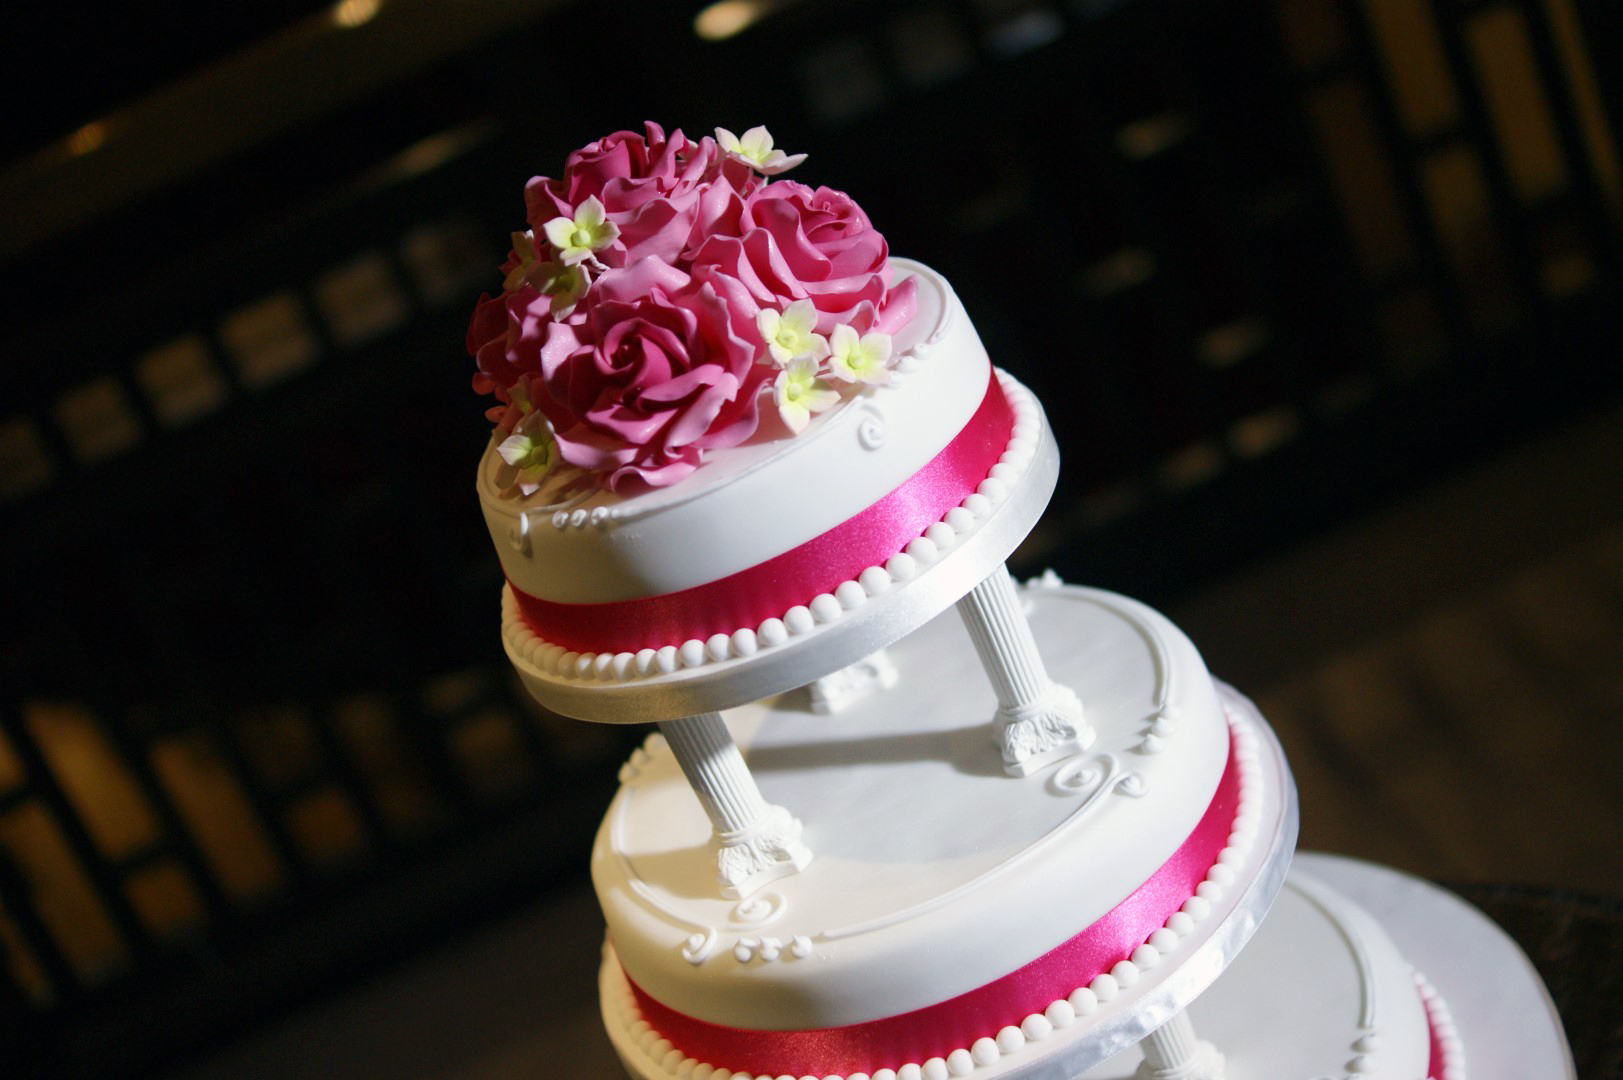 Rose Cer Tiered Wedding Cake With Pillars